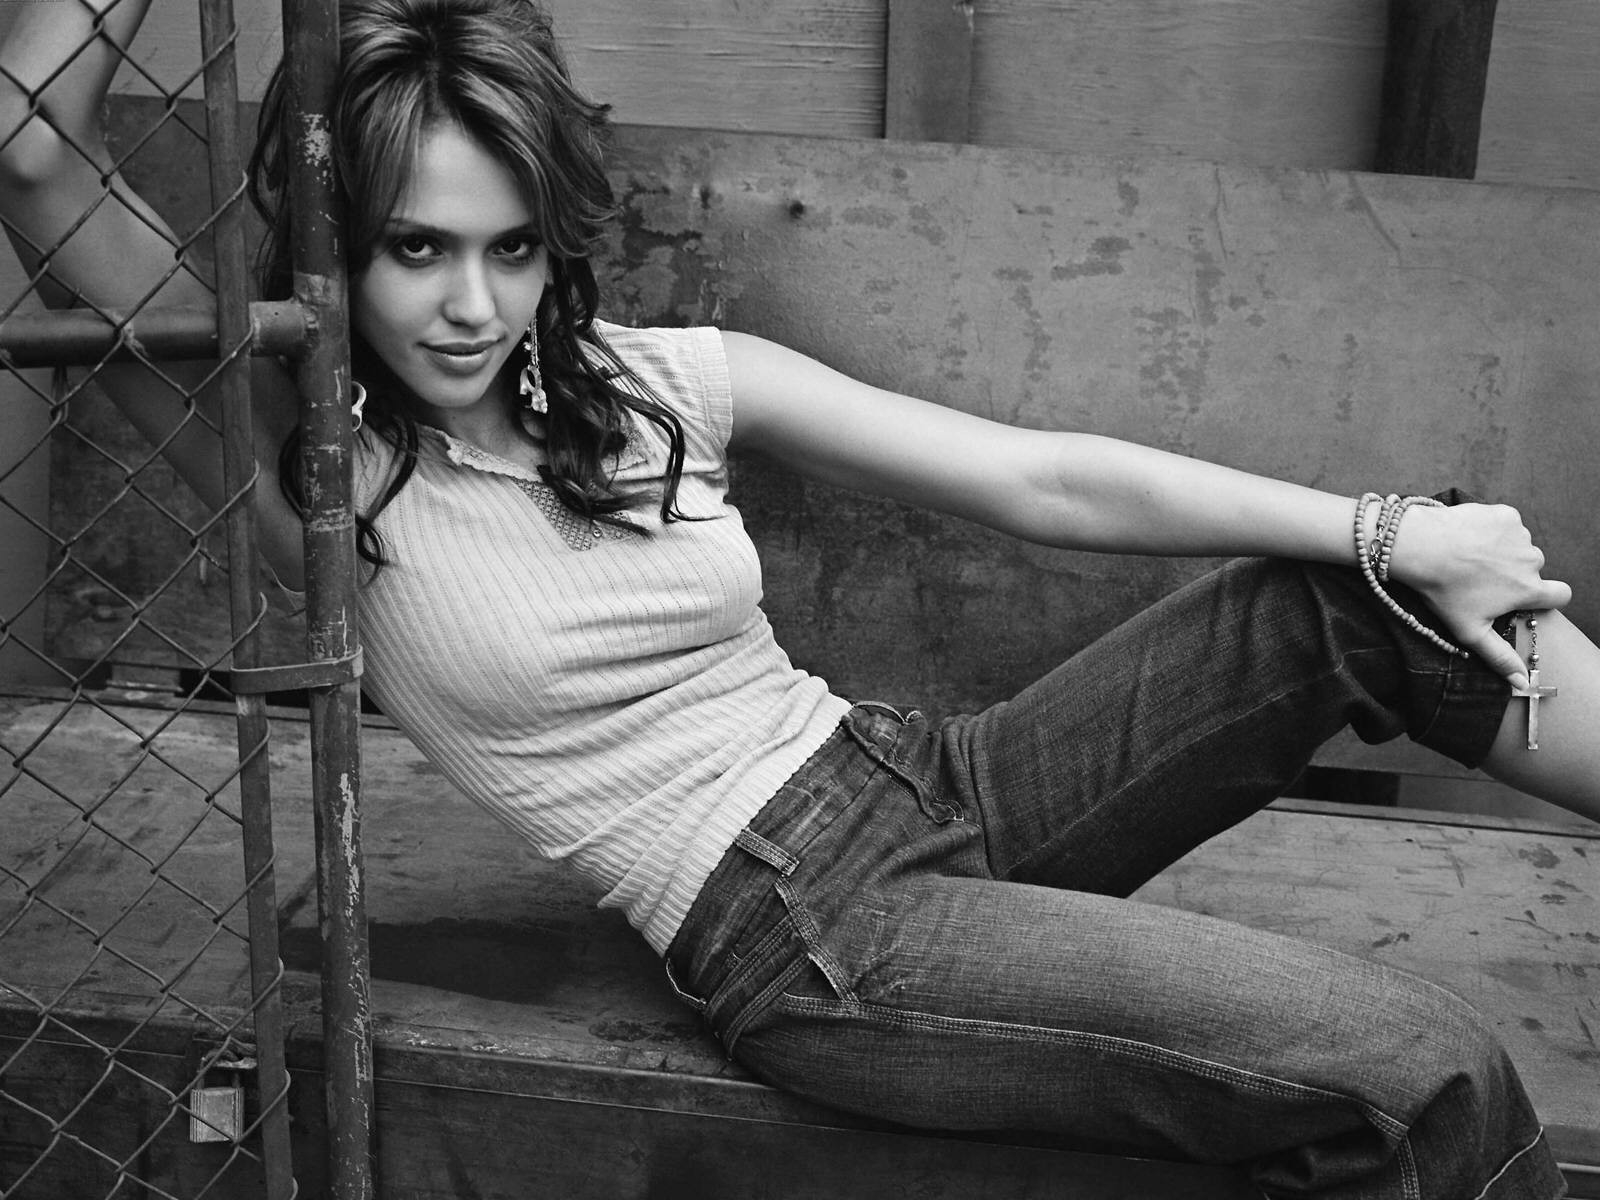 Wallpaper di Jessica Alba, splendida anche in jeans